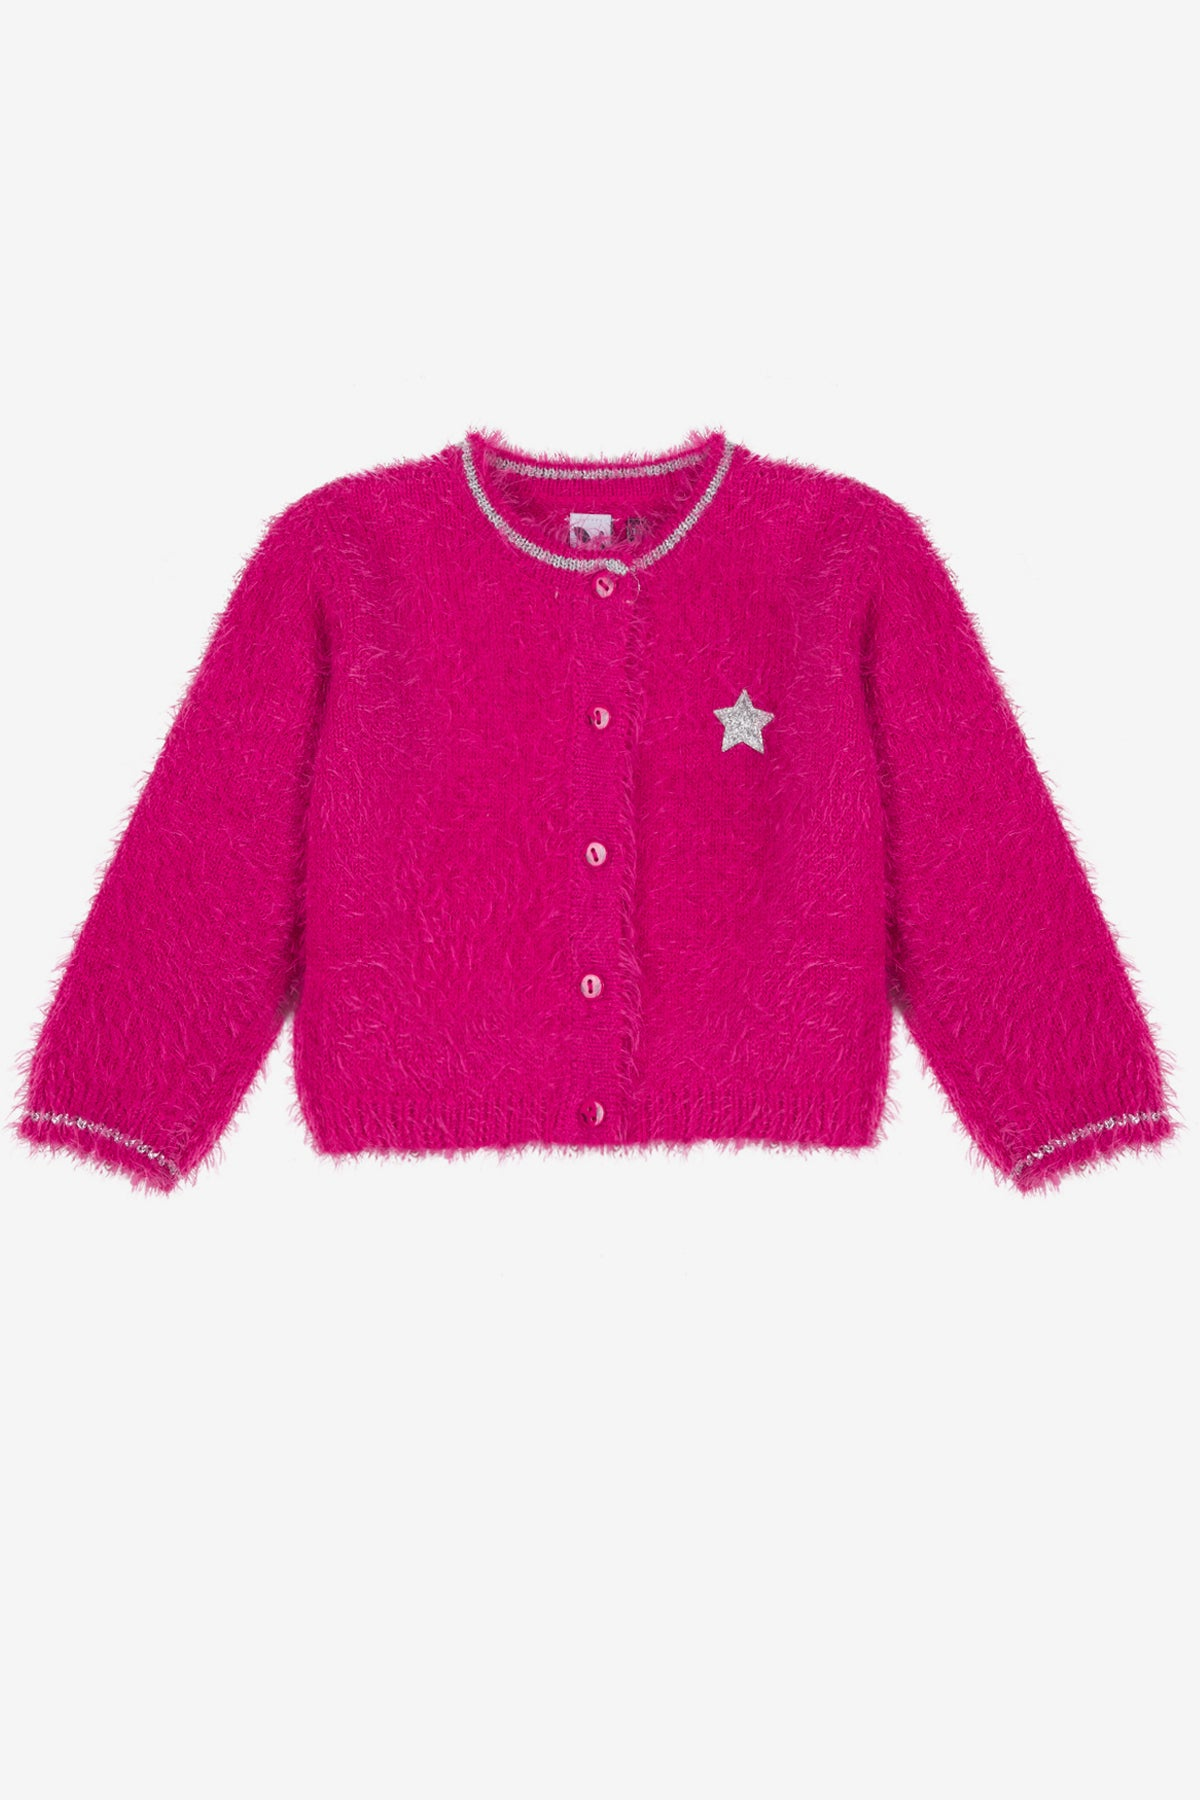 486253557 3pommes Fuchsia Star Baby Cardigan - Mini Ruby